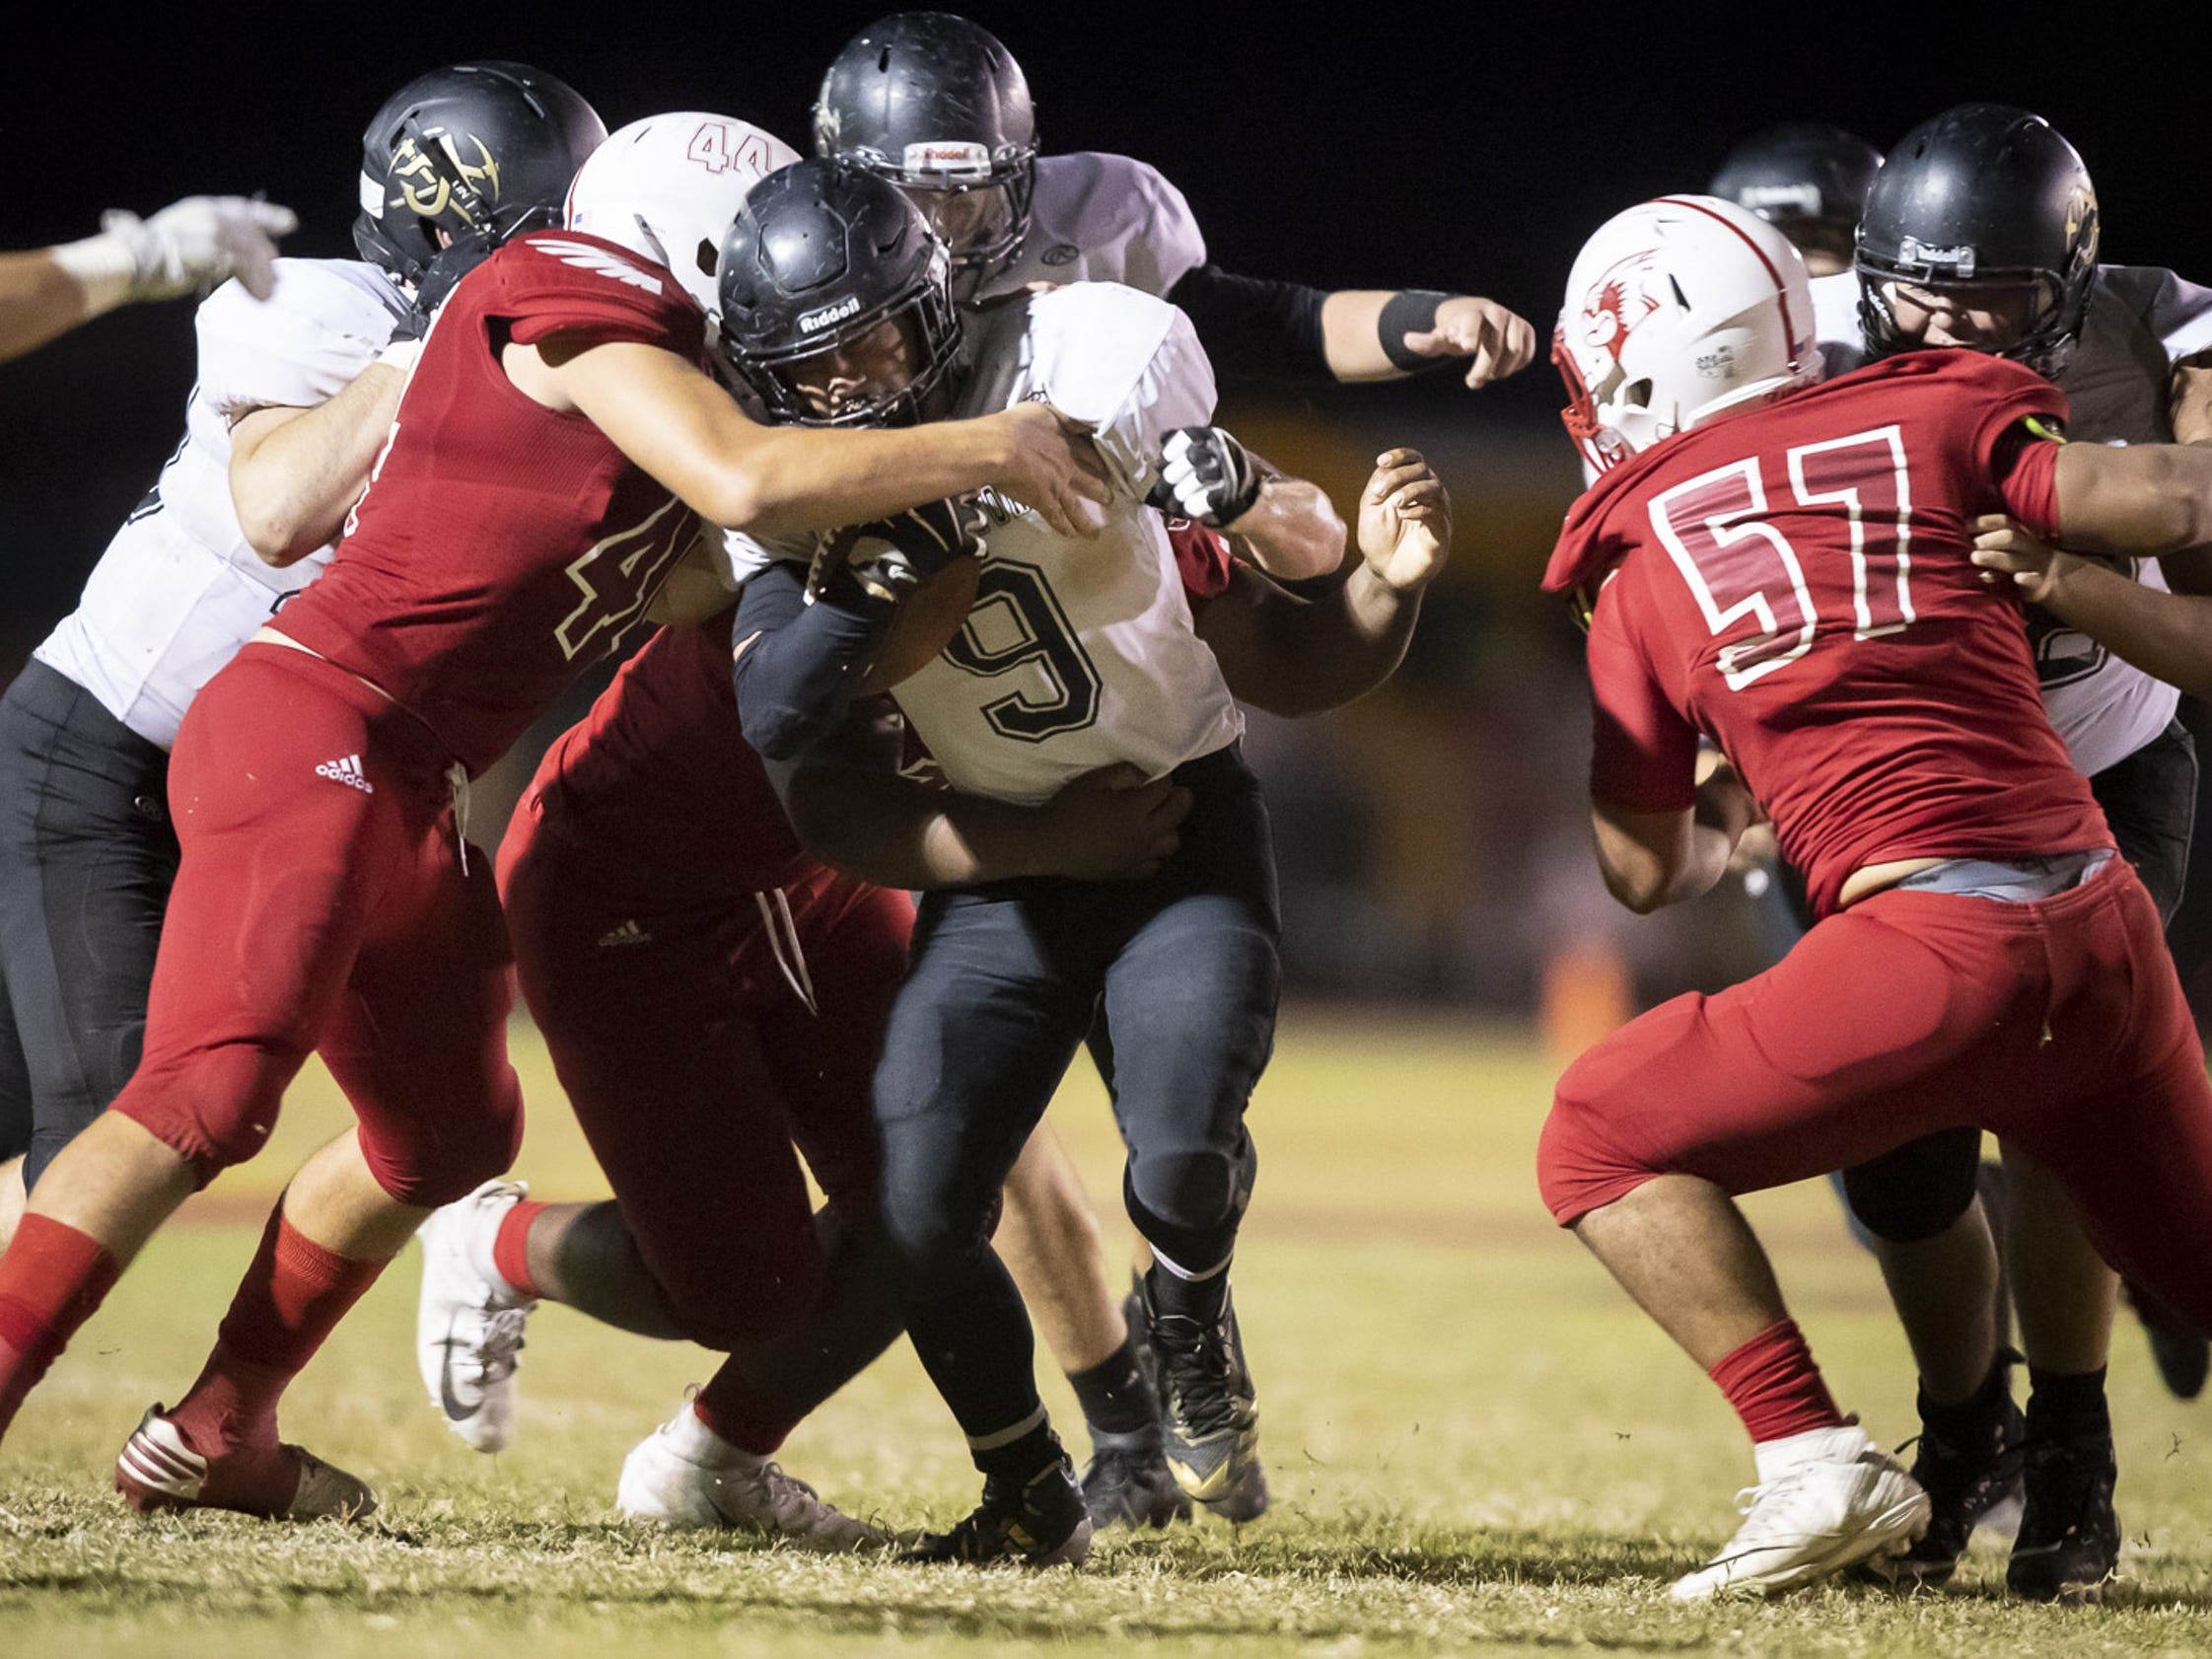 Senior running back William Lohman (9) of the Apache Junction Prospectors runs the ball against the Glendale Cardinals at Glendale High School on Friday, October 19, 2018 in Glendale, Arizona. #azhsfb